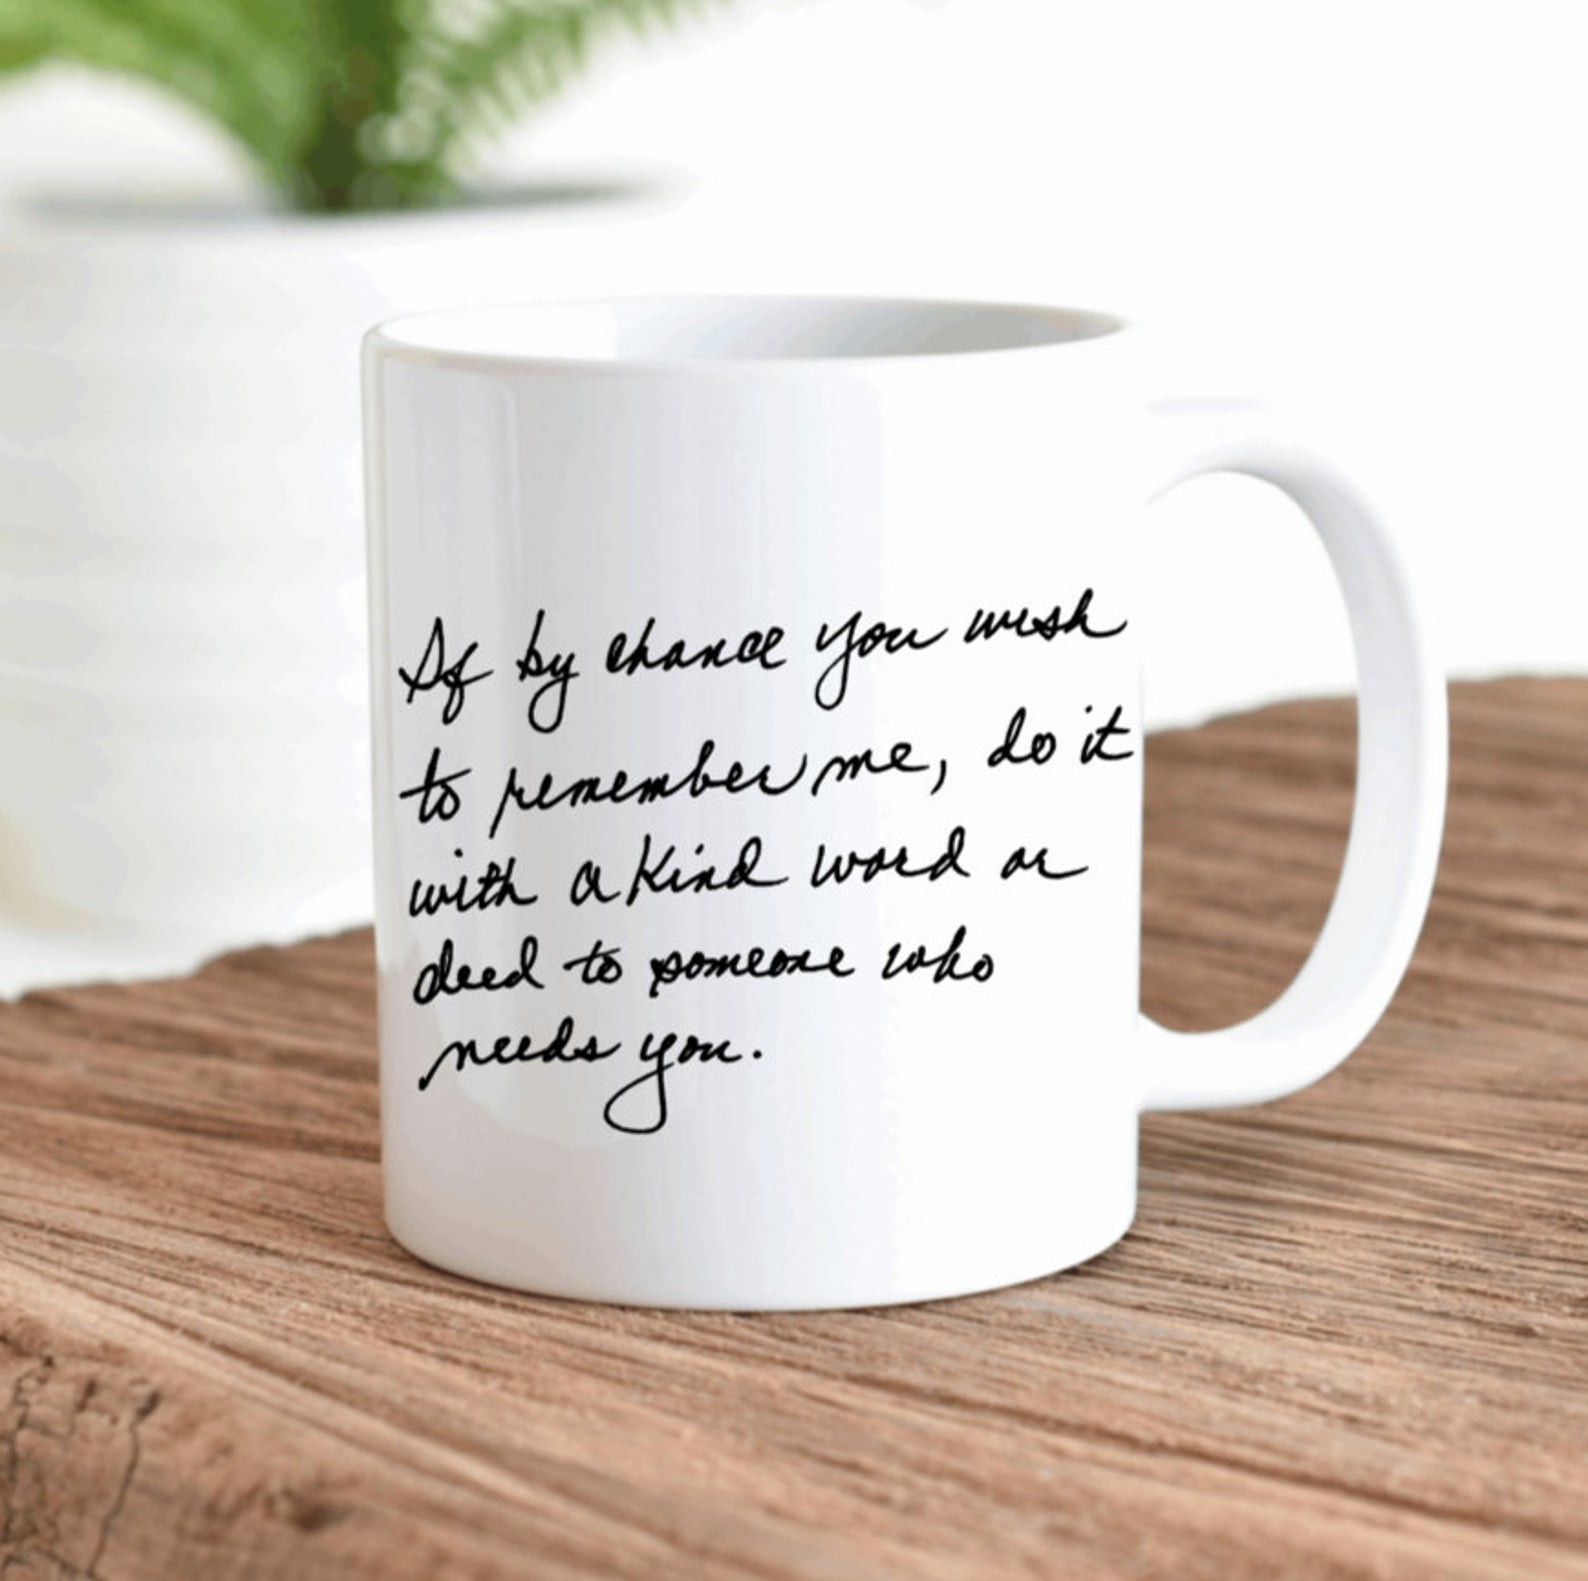 mug with handwritten note from a loved one printed on it